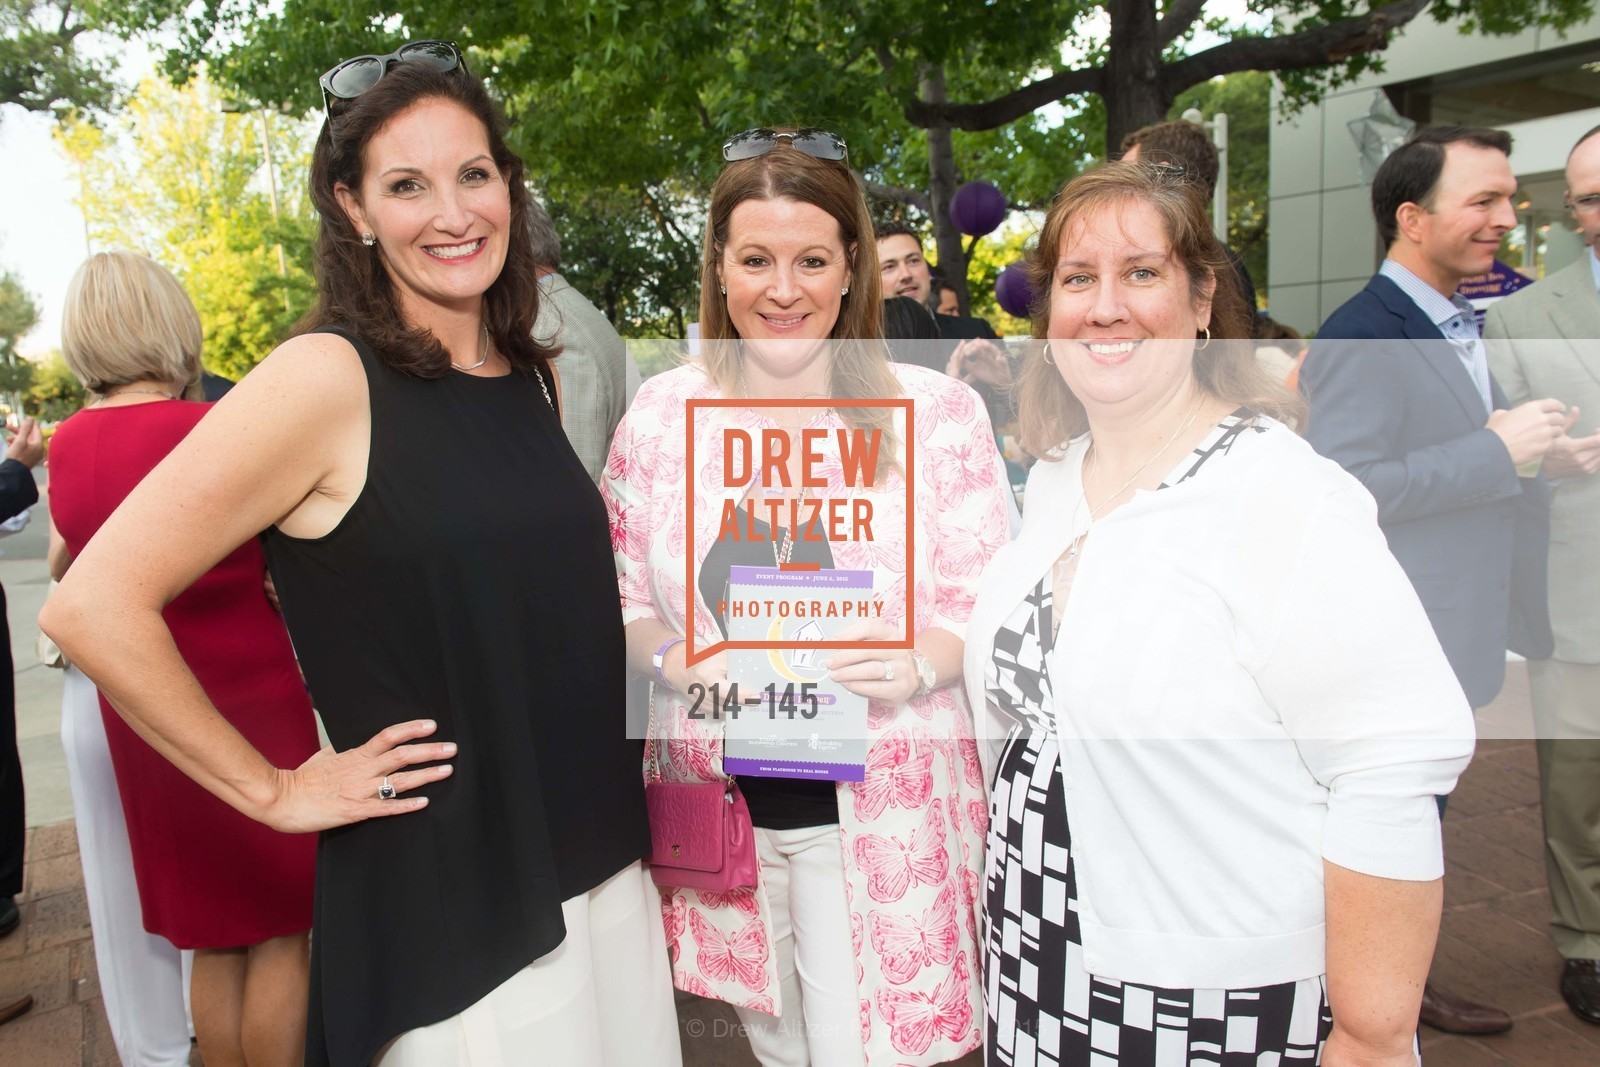 Stephanie Oshman, Paula Griffin, Jill Shanmugasundaram, DREAMS HAPPEN: Playhouse Auction and Gala, Stanford Shopping Center, June 5th, 2015,Drew Altizer, Drew Altizer Photography, full-service agency, private events, San Francisco photographer, photographer california